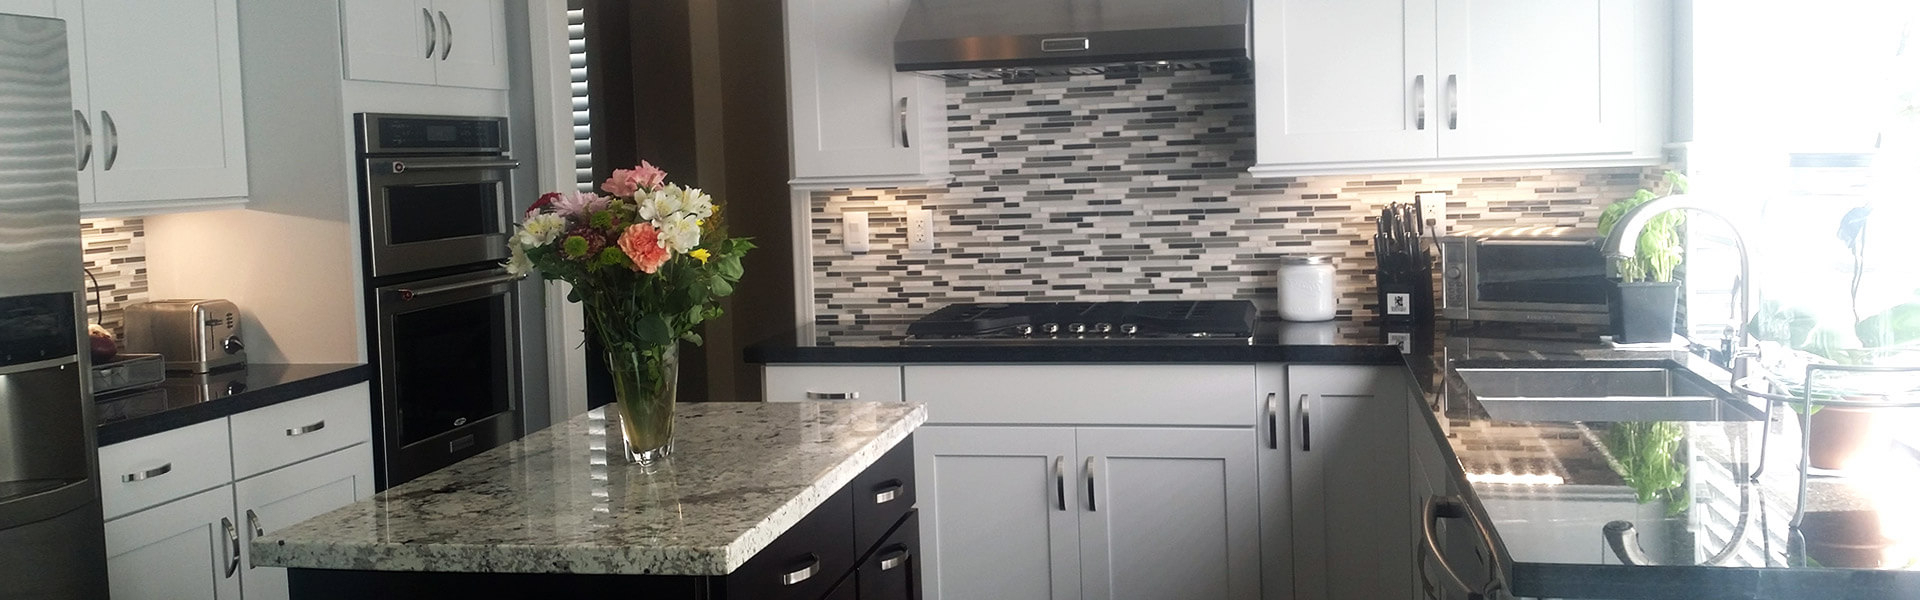 2020 Kitchen And Bath Remodel In Upland, Ca